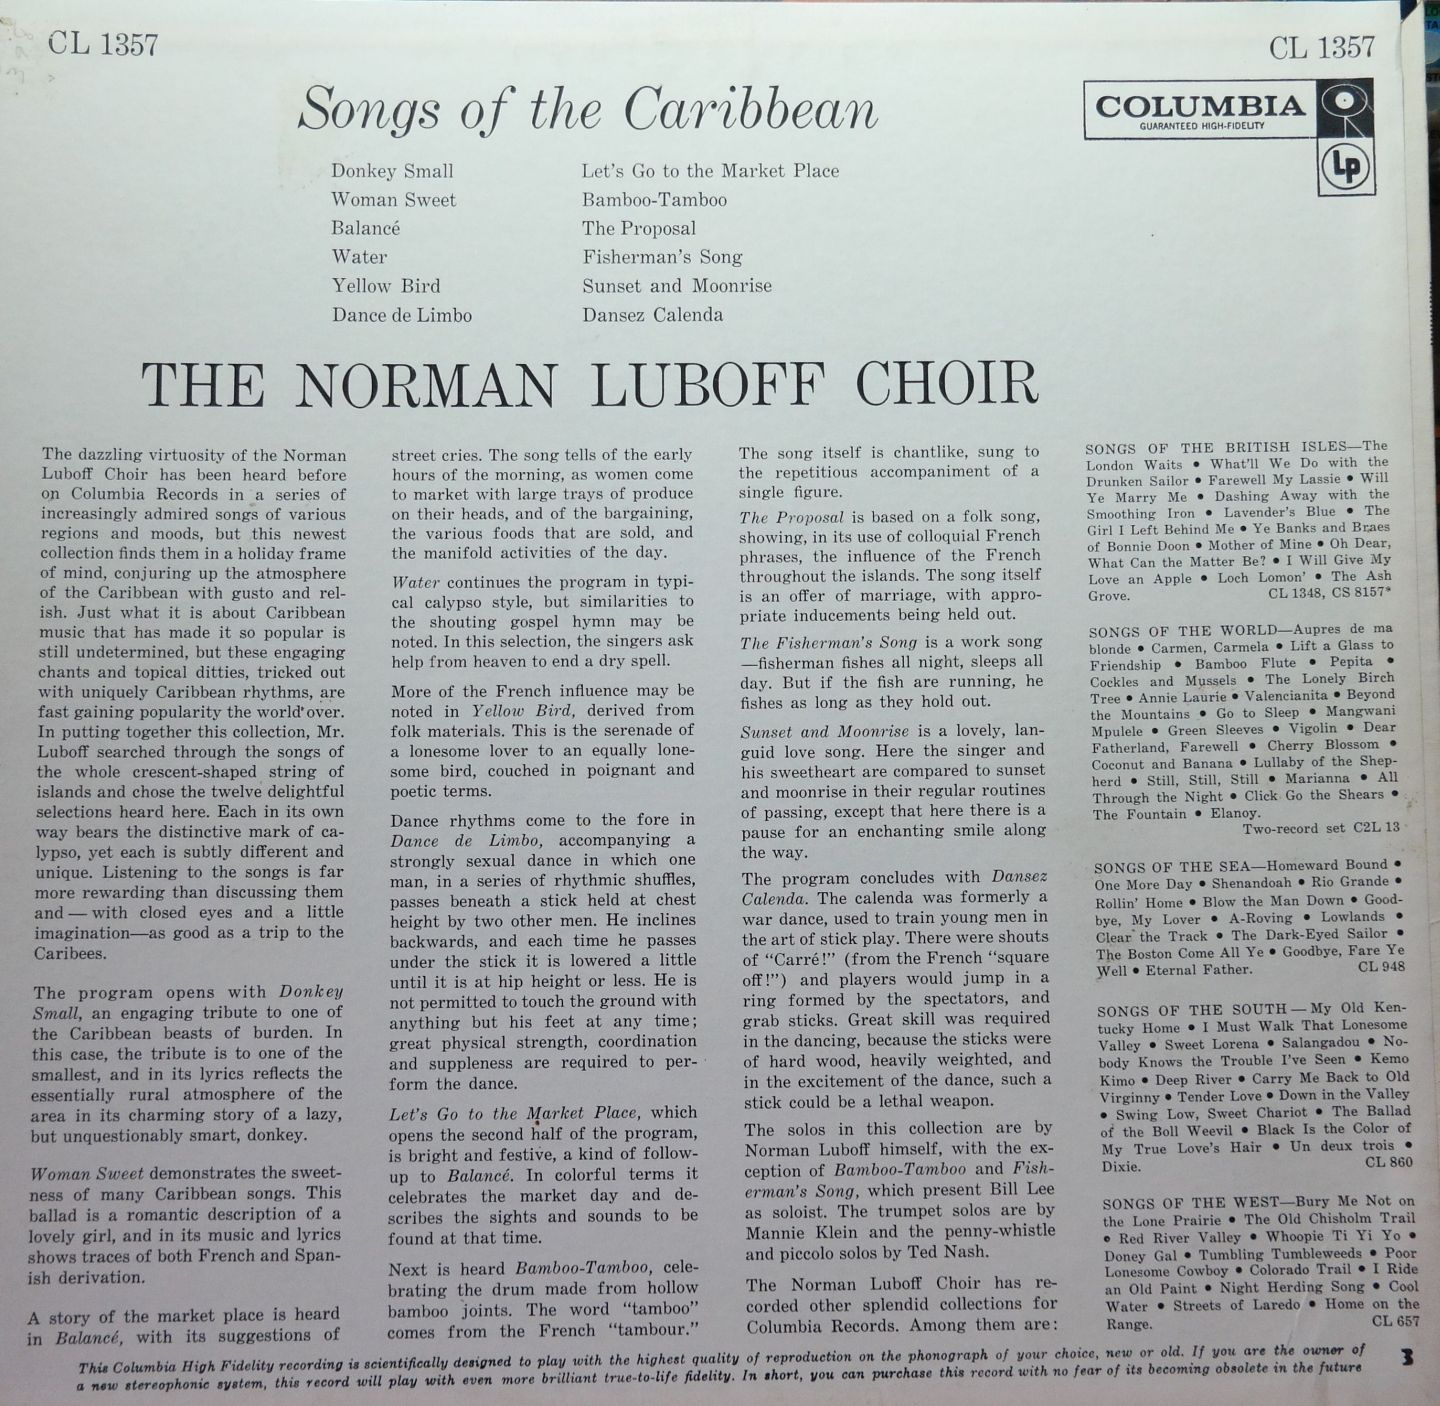 Norman Luboff Choir - Songs Of The Caribbean - CL1357